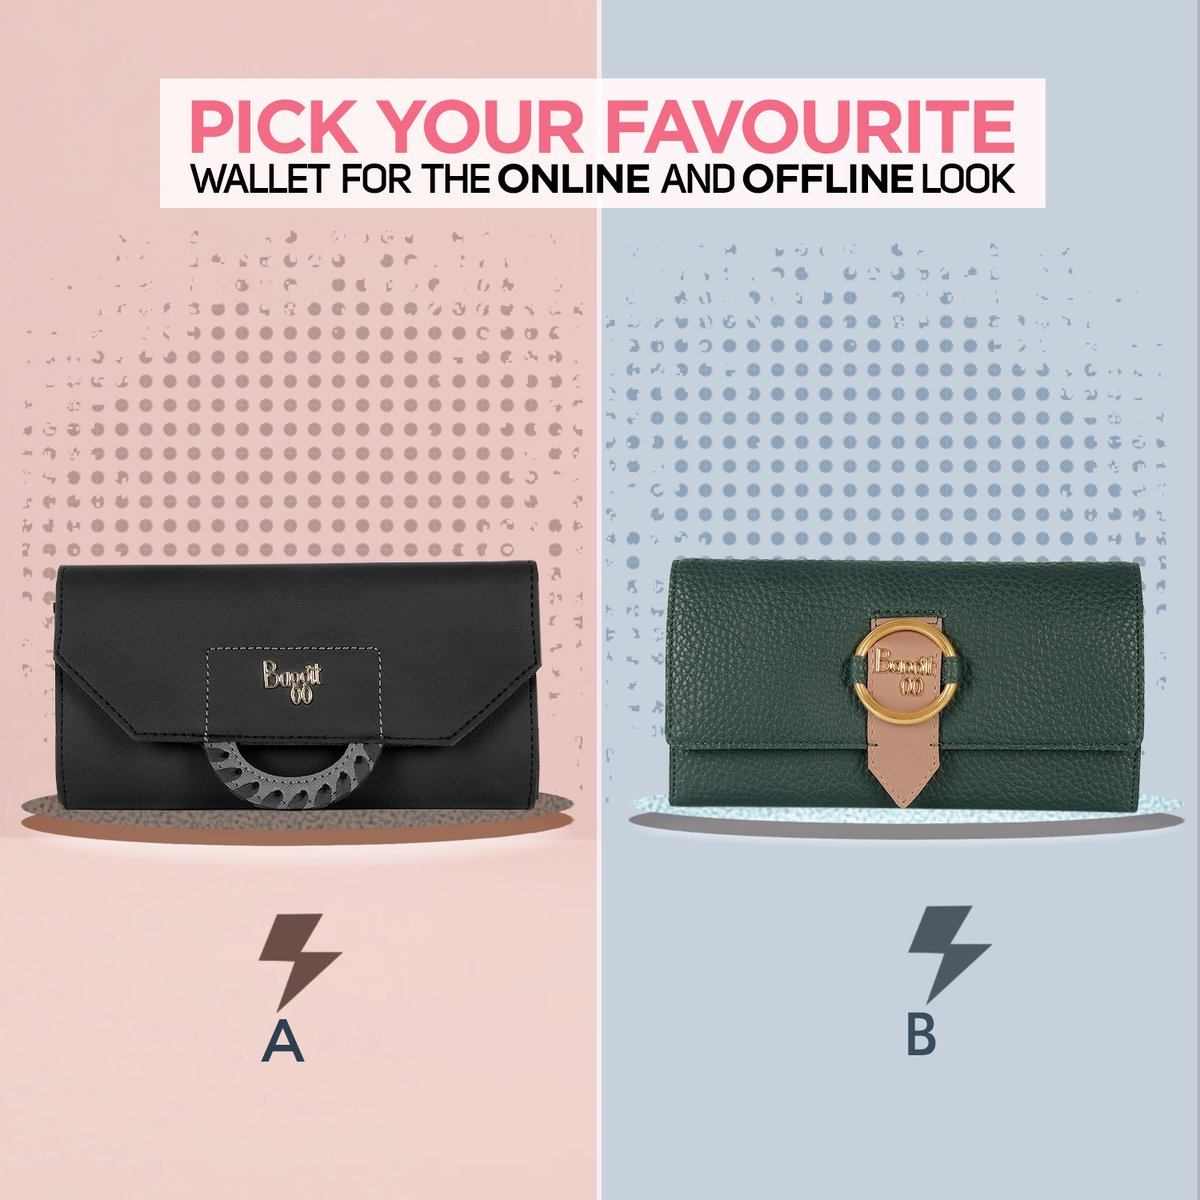 Getting decked up is incomplete without a perfect accessory. Isn't it?Tell us which one between A or B are you going to pick for your outings? A - LW CLOSET SCAN BLACK B - LW DREA RABBIE GREEN #MadeInIndia #wallet #ladieswallet #fashiontips https://t.co/RkJjhxfWaC